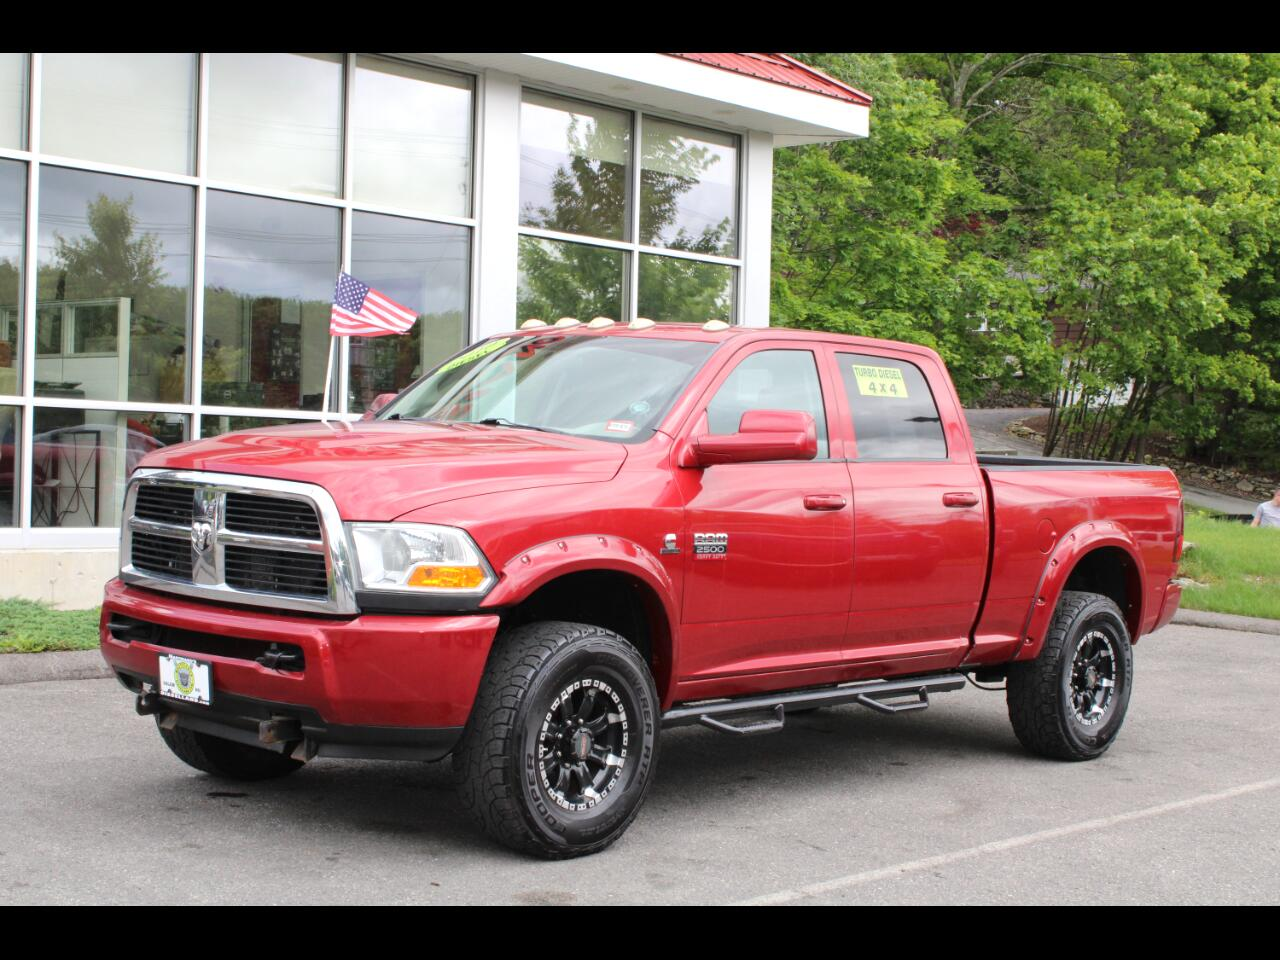 2010 Dodge Ram 2500 CUMMINS TURBO DIESEL CREW CAB LOW MILES !!